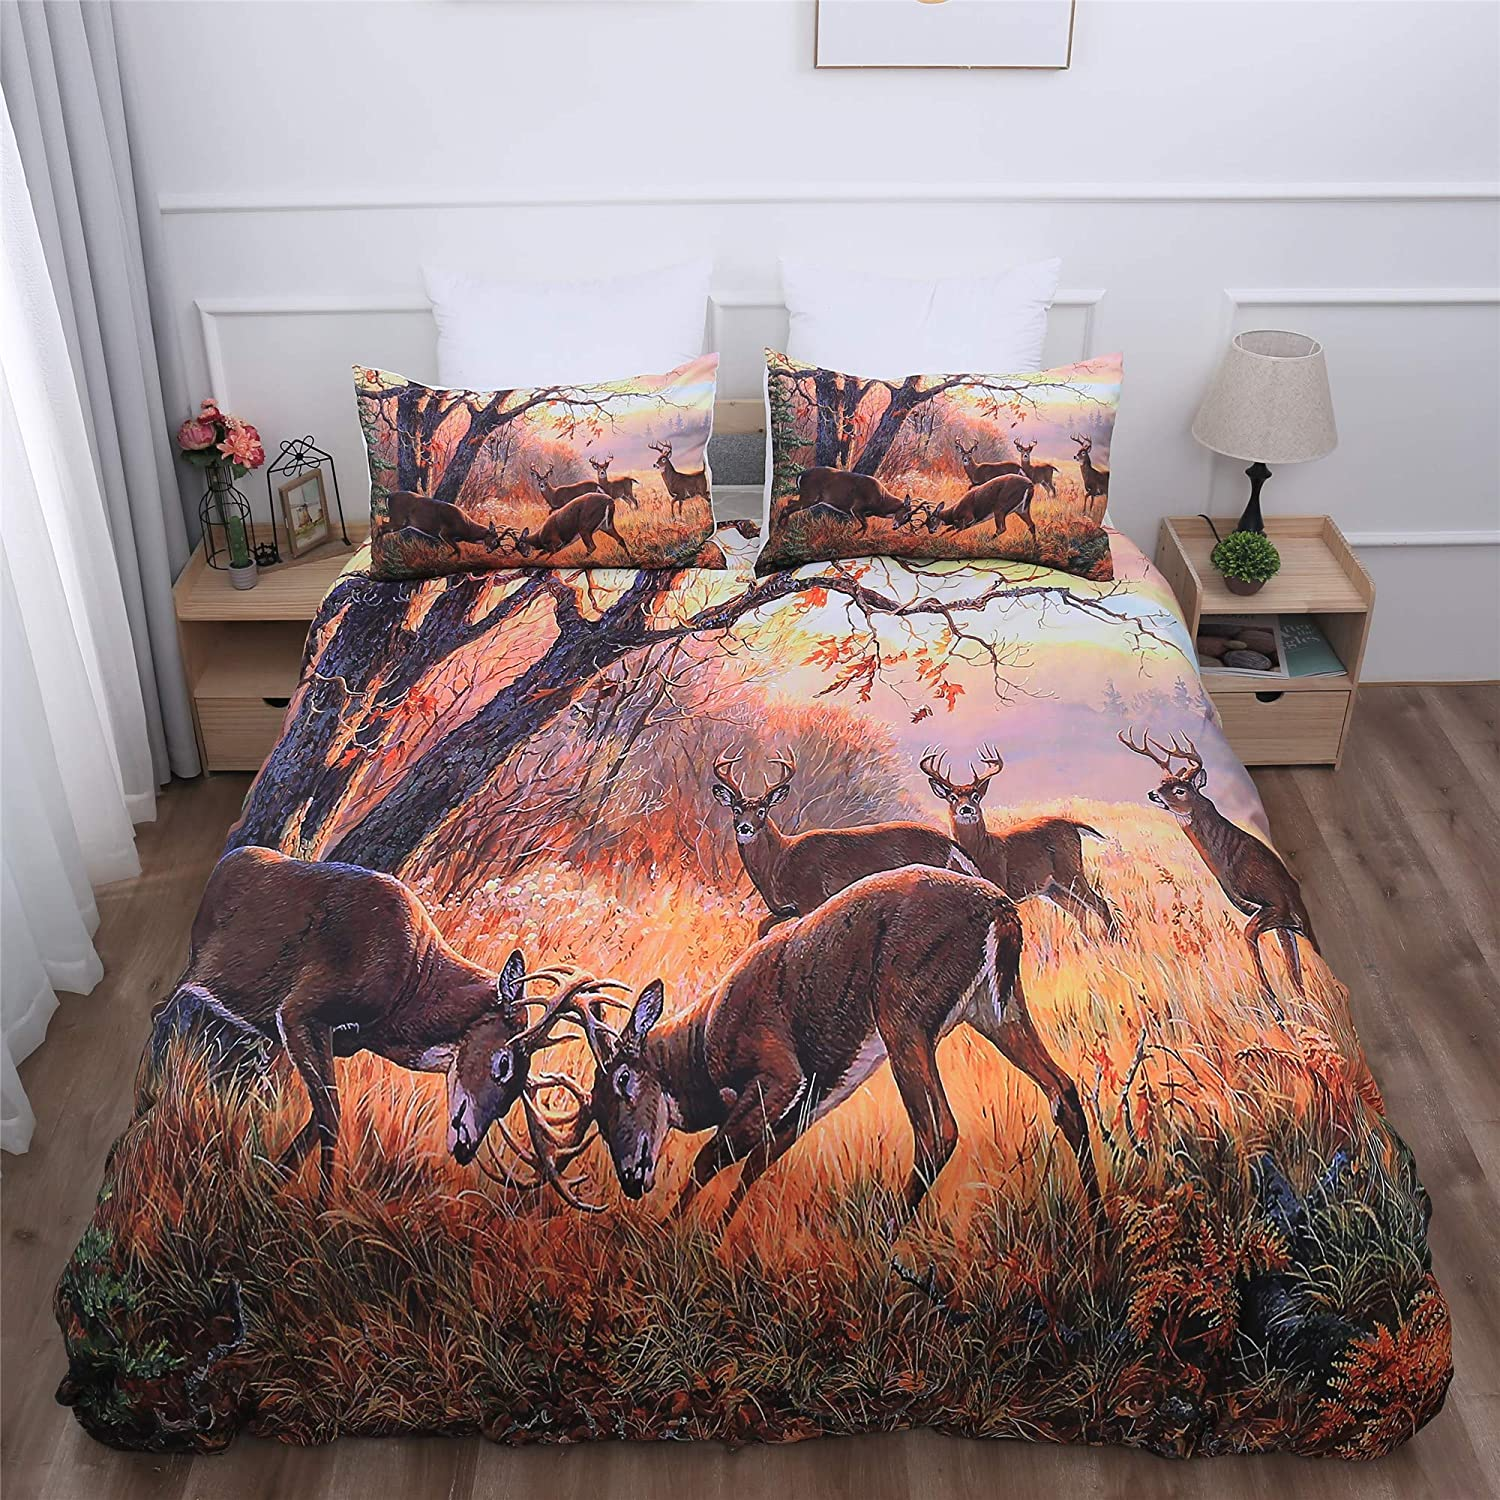 Amazon Com Goodidea Great Outdoor Deer Duvet Cover Set Hunting Wild Animal Autumn Camo Decorative Bedding Quilt Cover Pillowcase Set Soft Breathable Queen Size Kitchen Dining